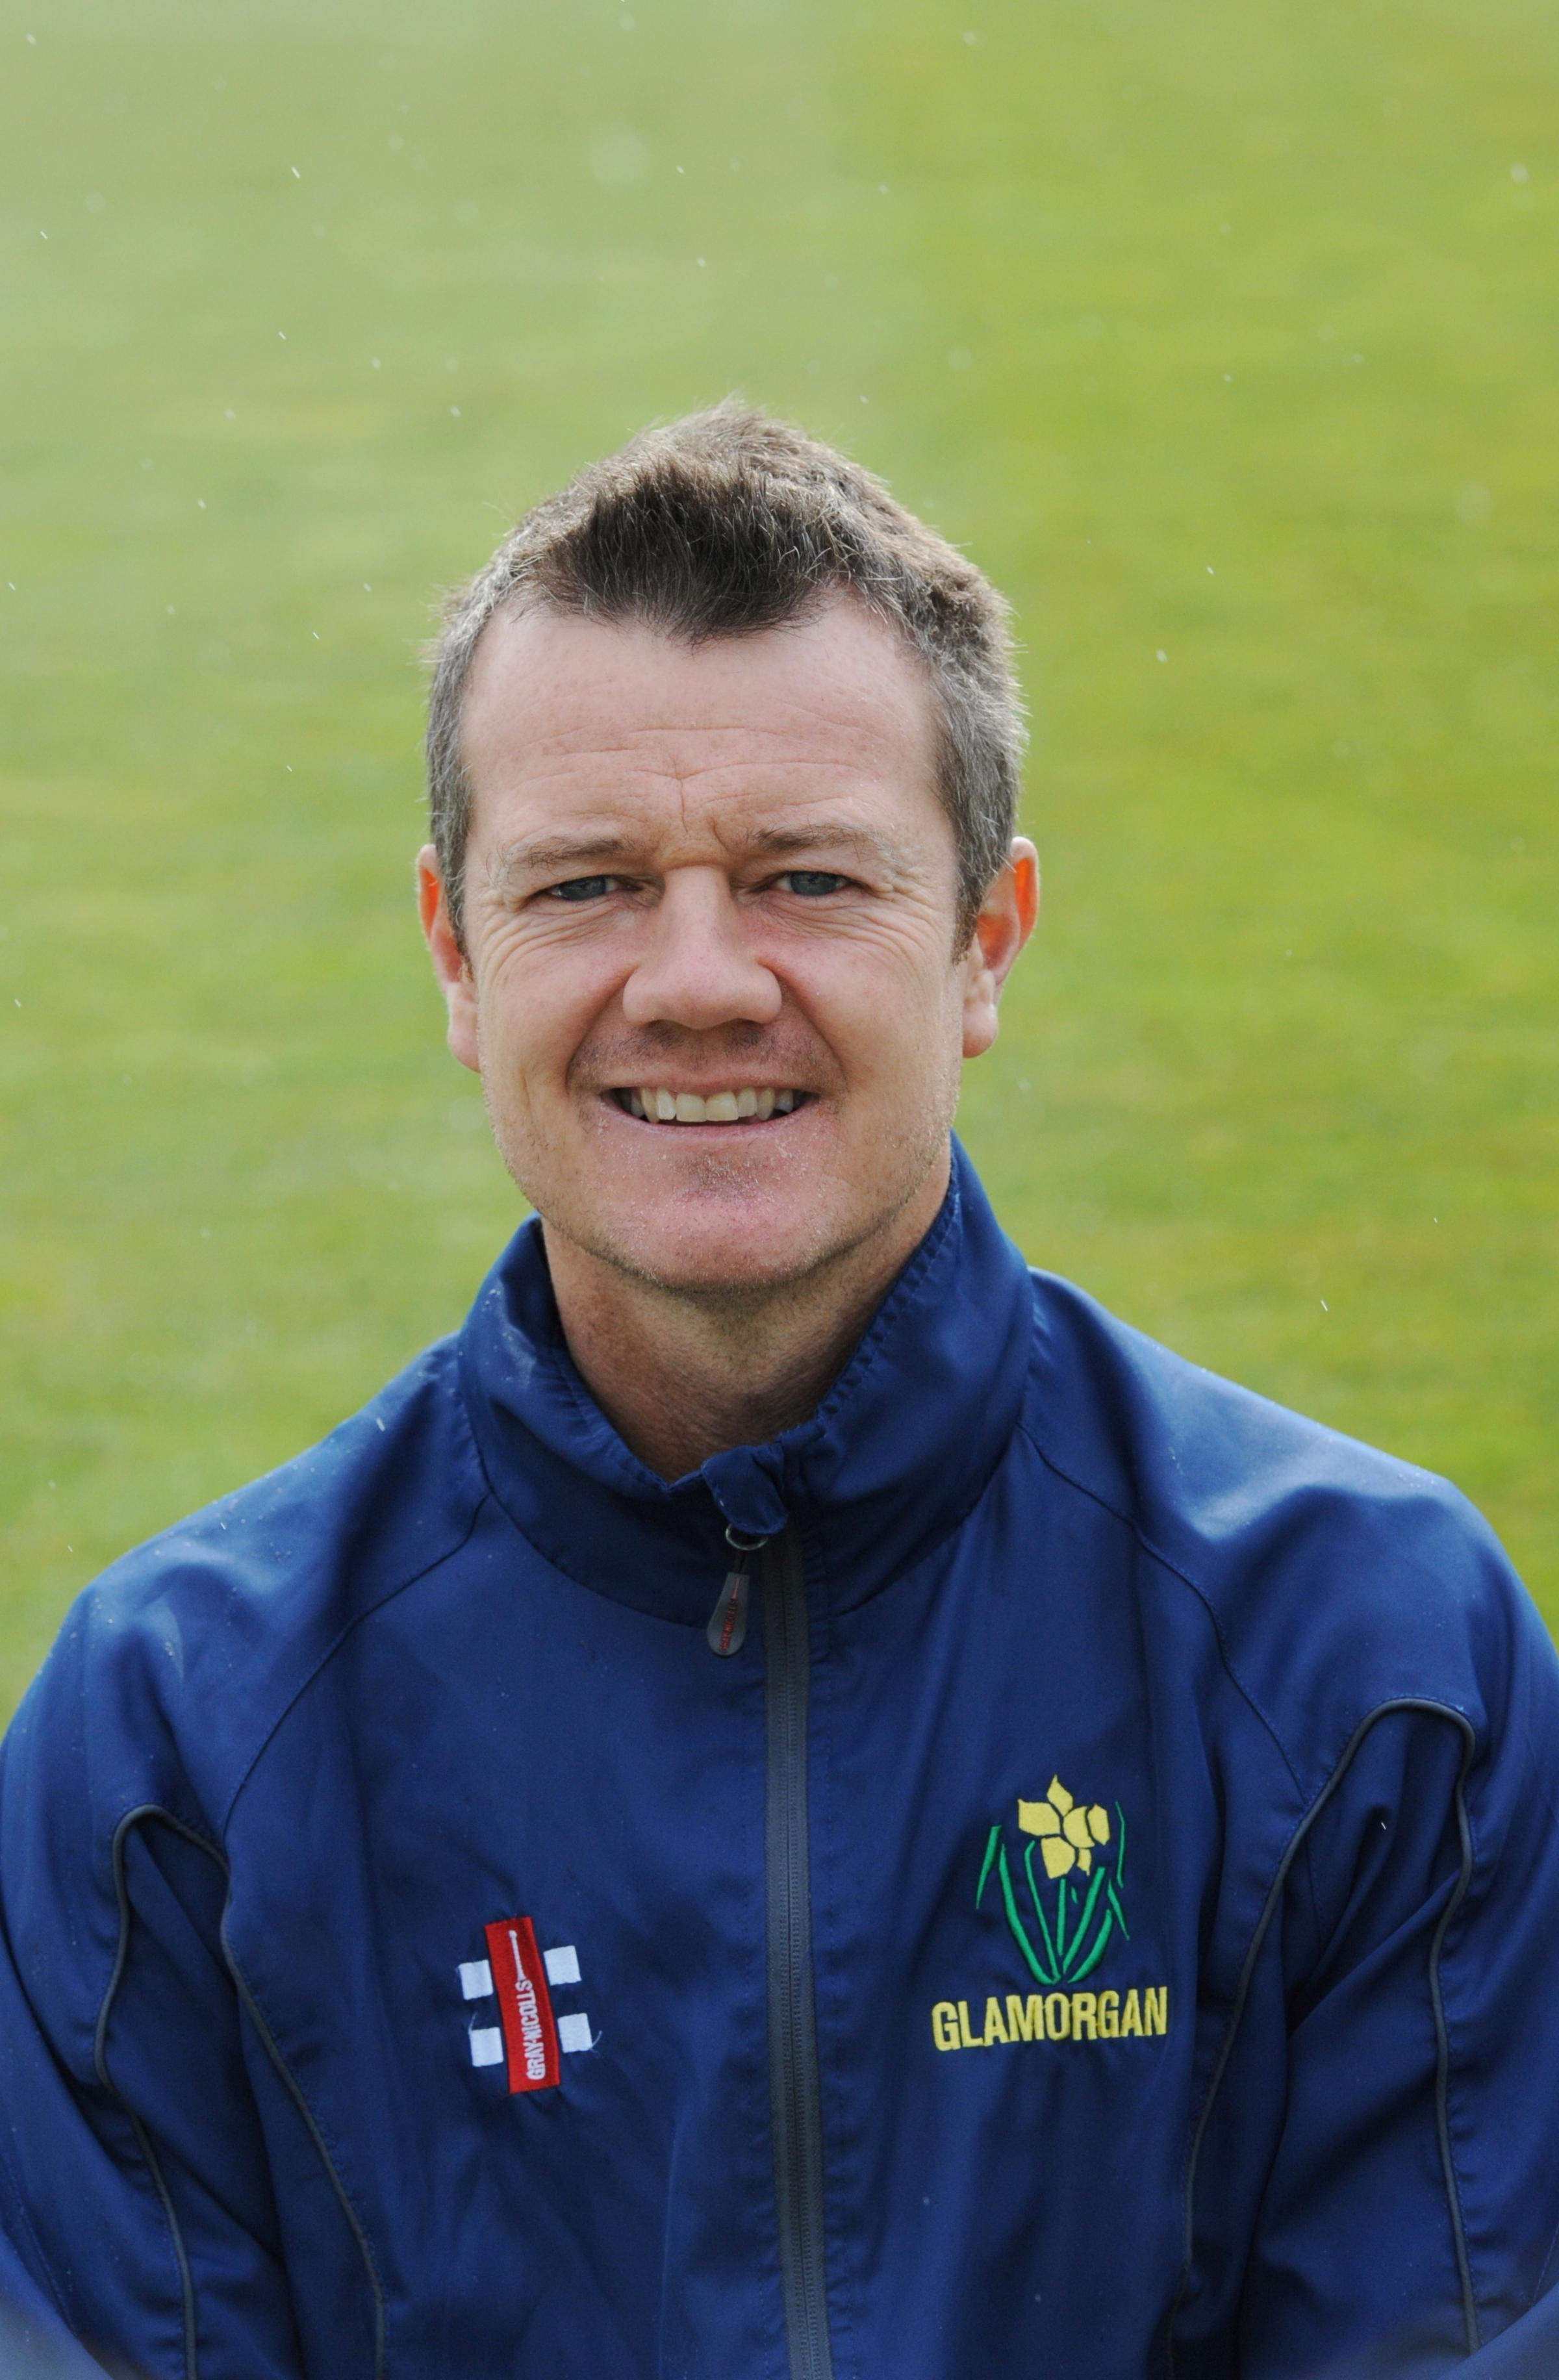 Glamorgon County Cricket Team Coach Toby Radford 2014 (4949246)